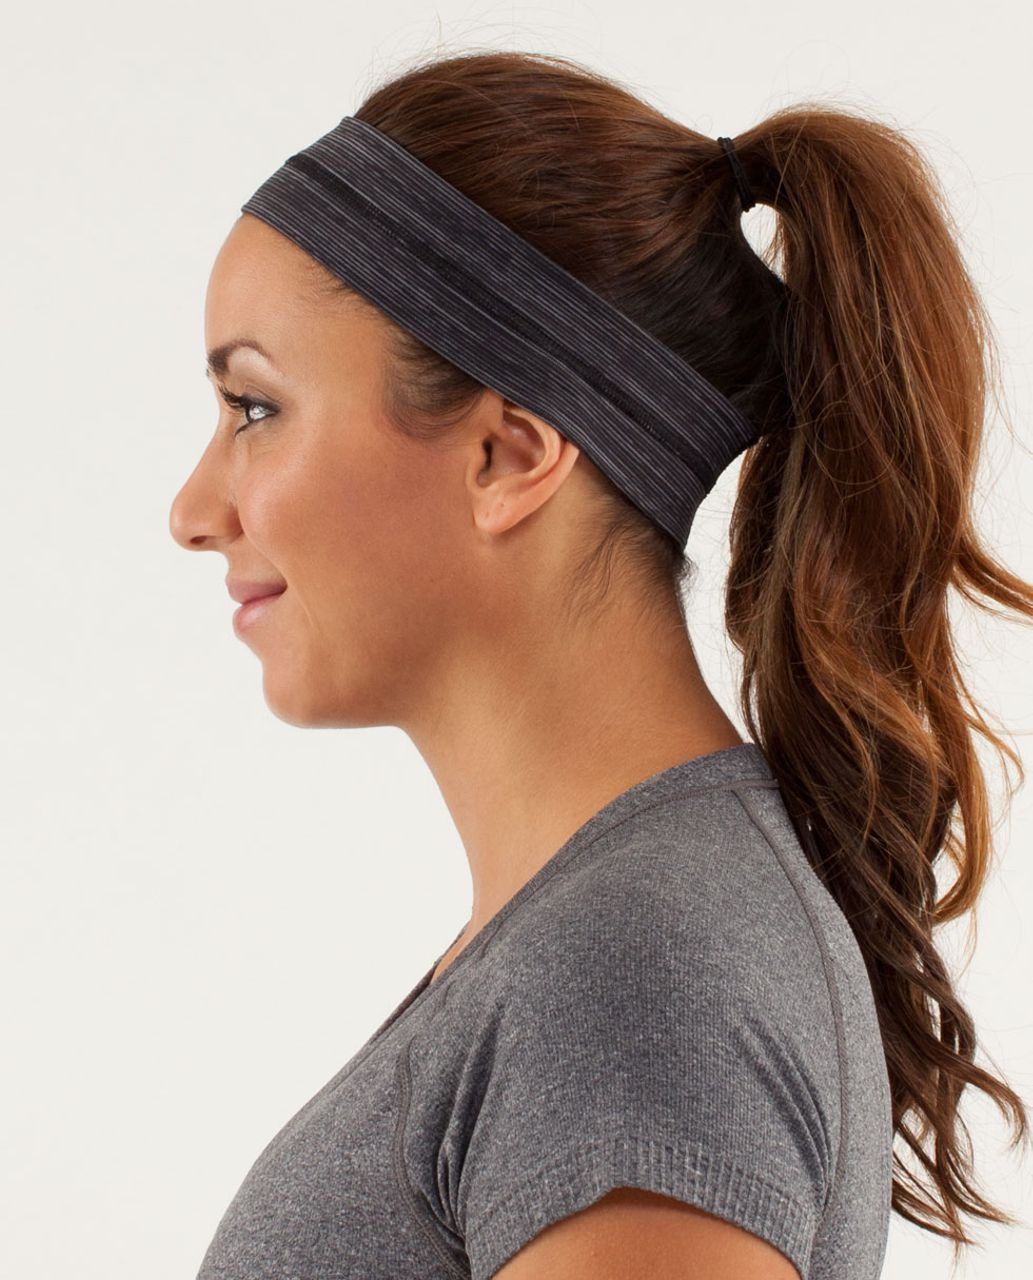 Lululemon Fly Away Tamer Headband - Wee Are From Space Black Coal